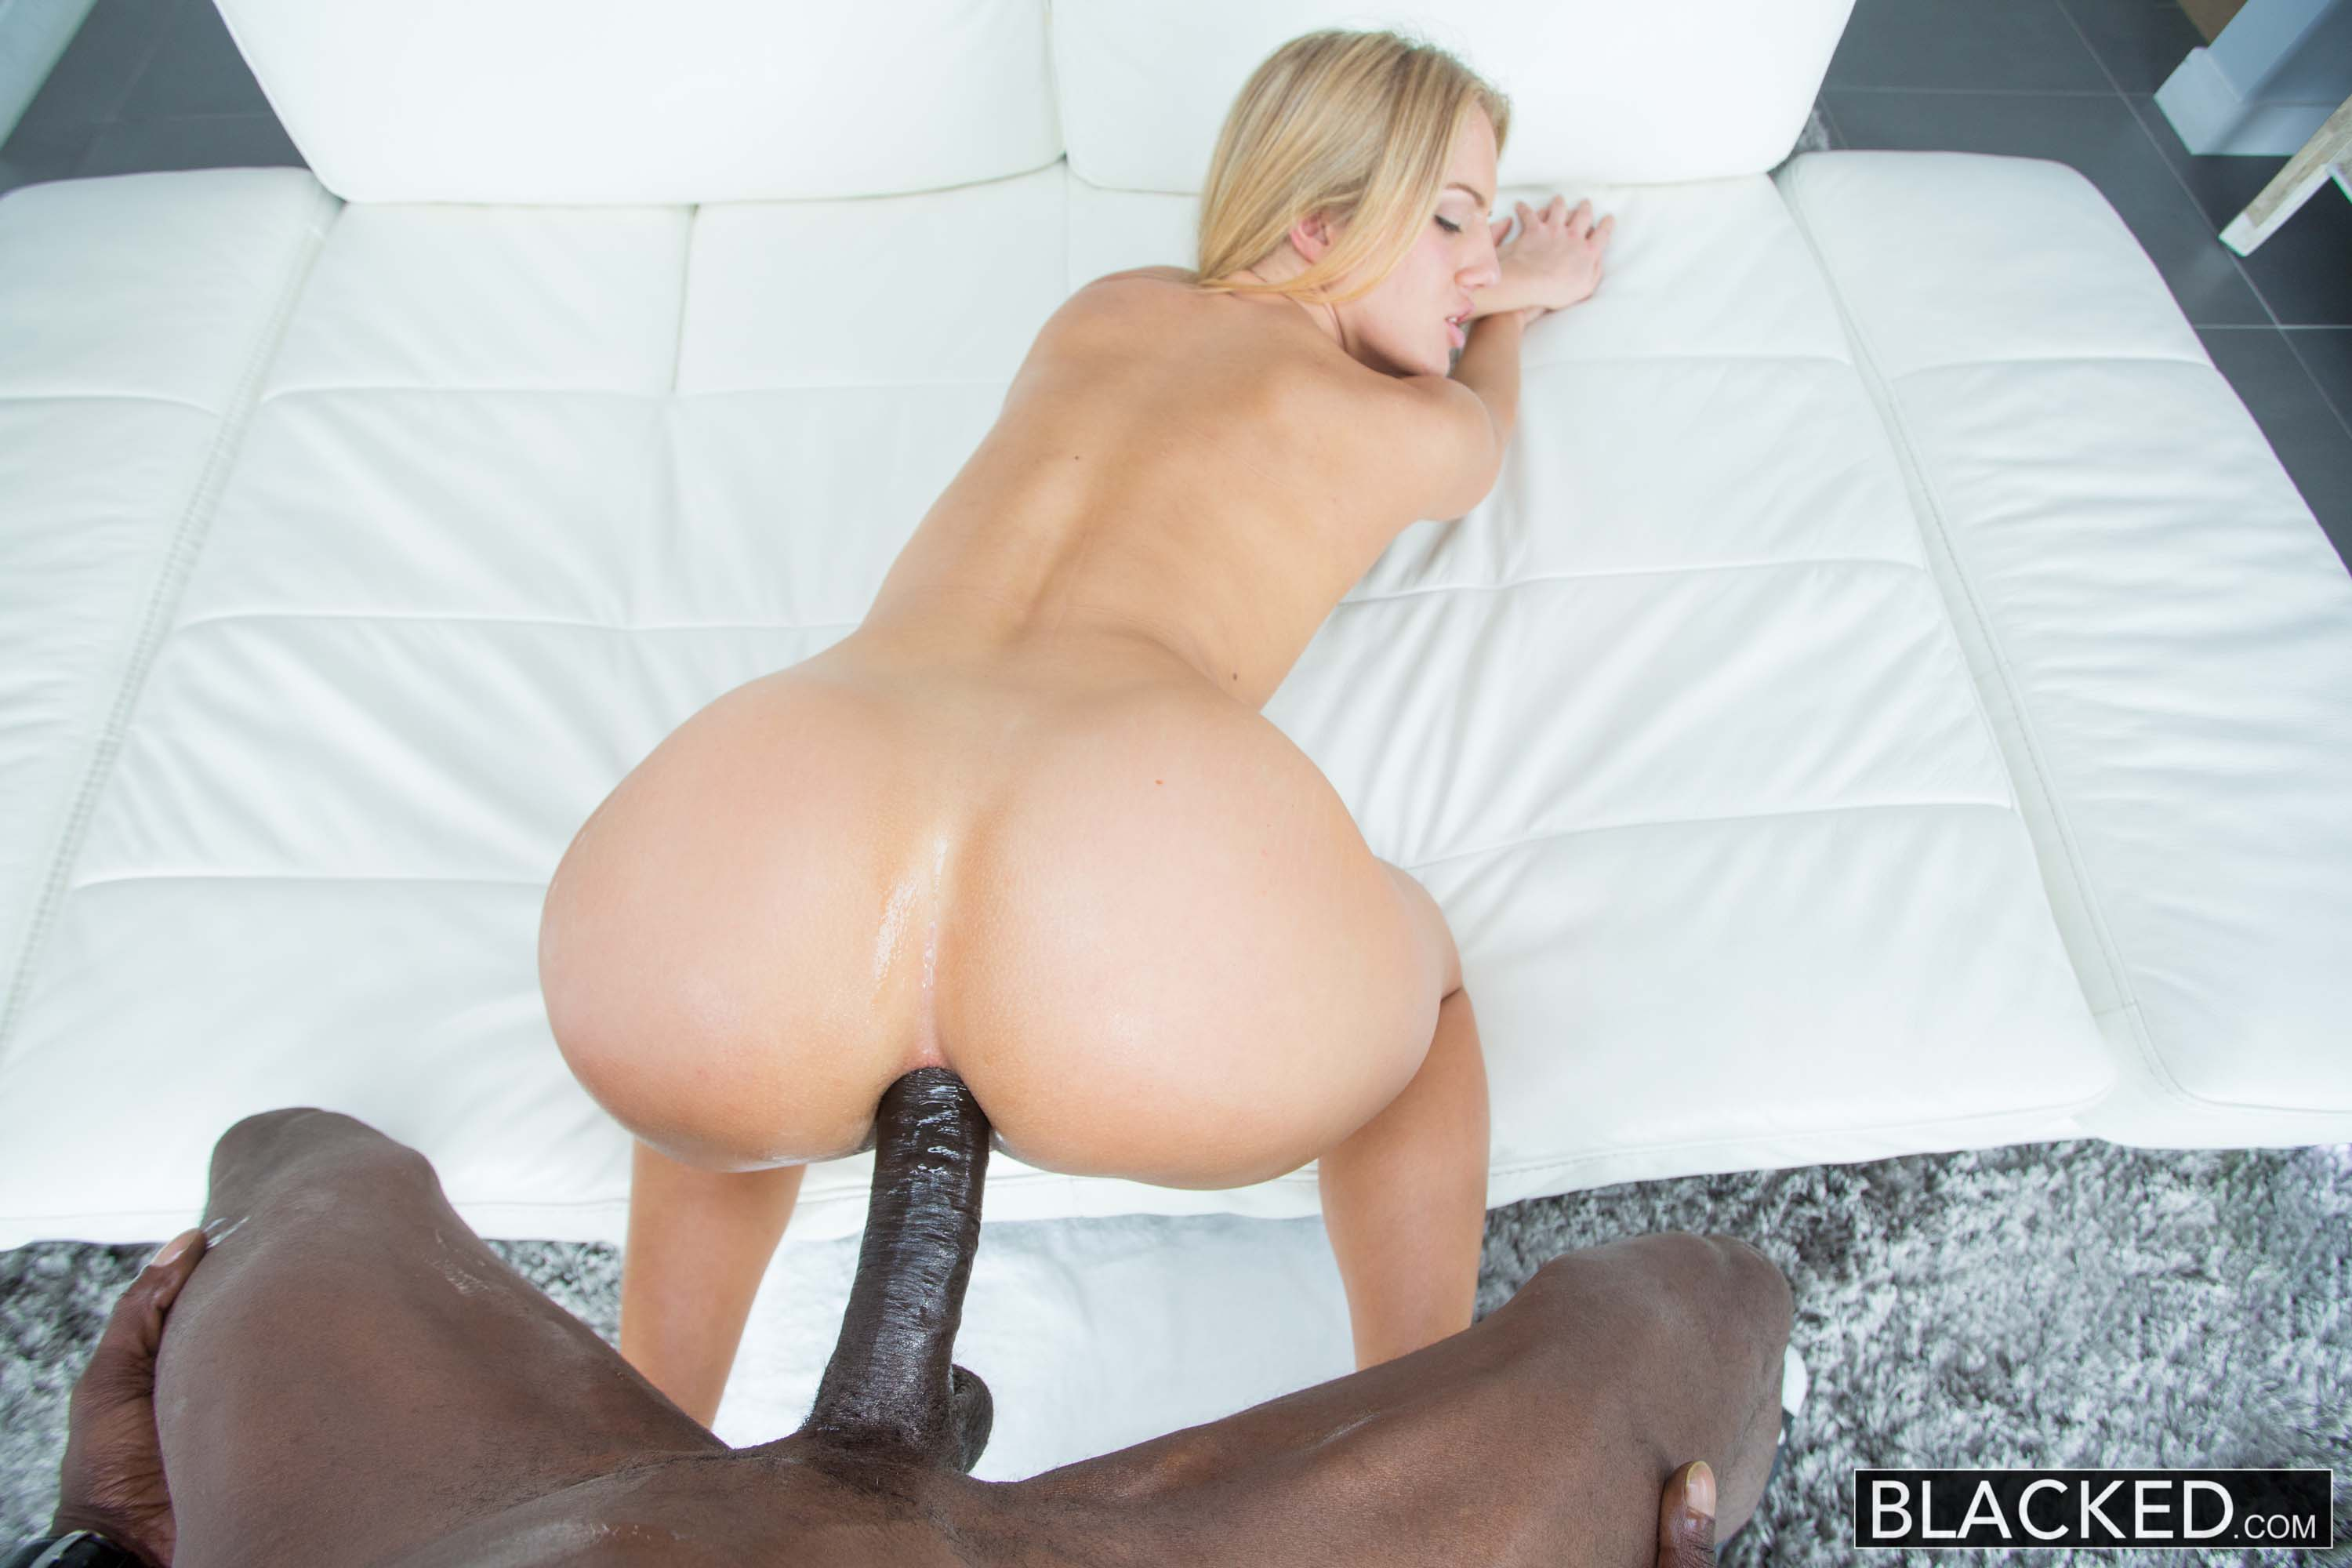 Big booty dirty diana loves putting in work